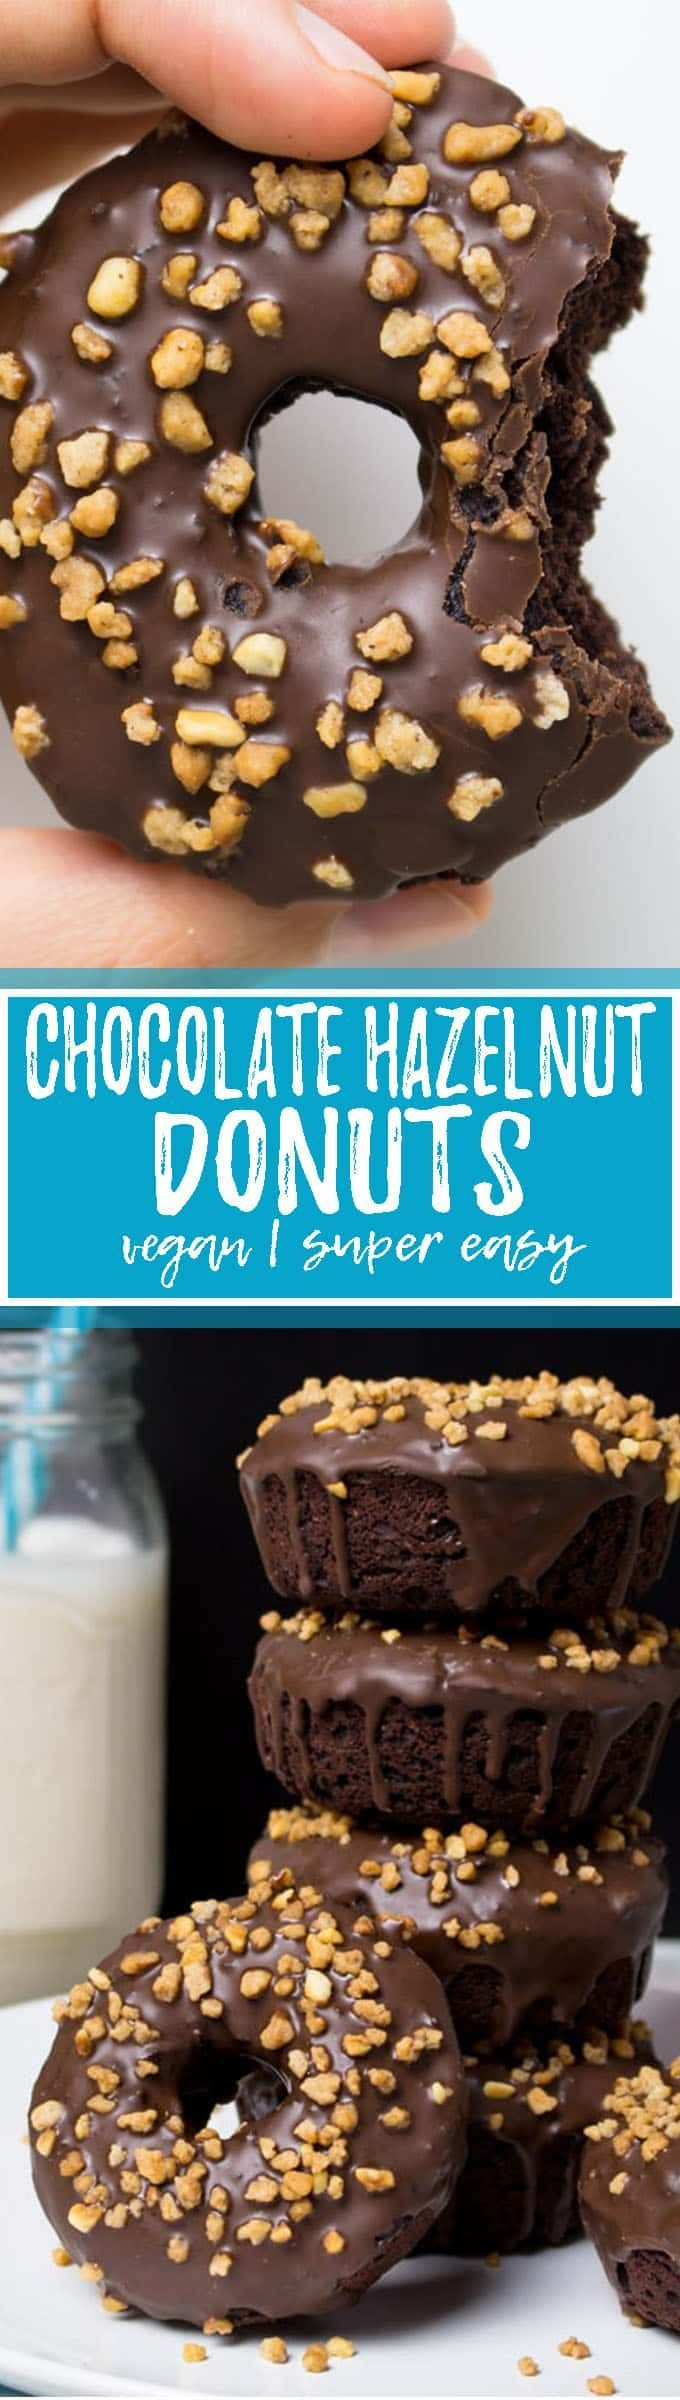 "These vegan chocolate hazelnut donuts are one of my all-time favorite vegan baking recipes! They taste just like ""Nutella"" donuts. SO good! Vegan donuts at their best! They make such a great vegan dessert. Big YUM!! <3 